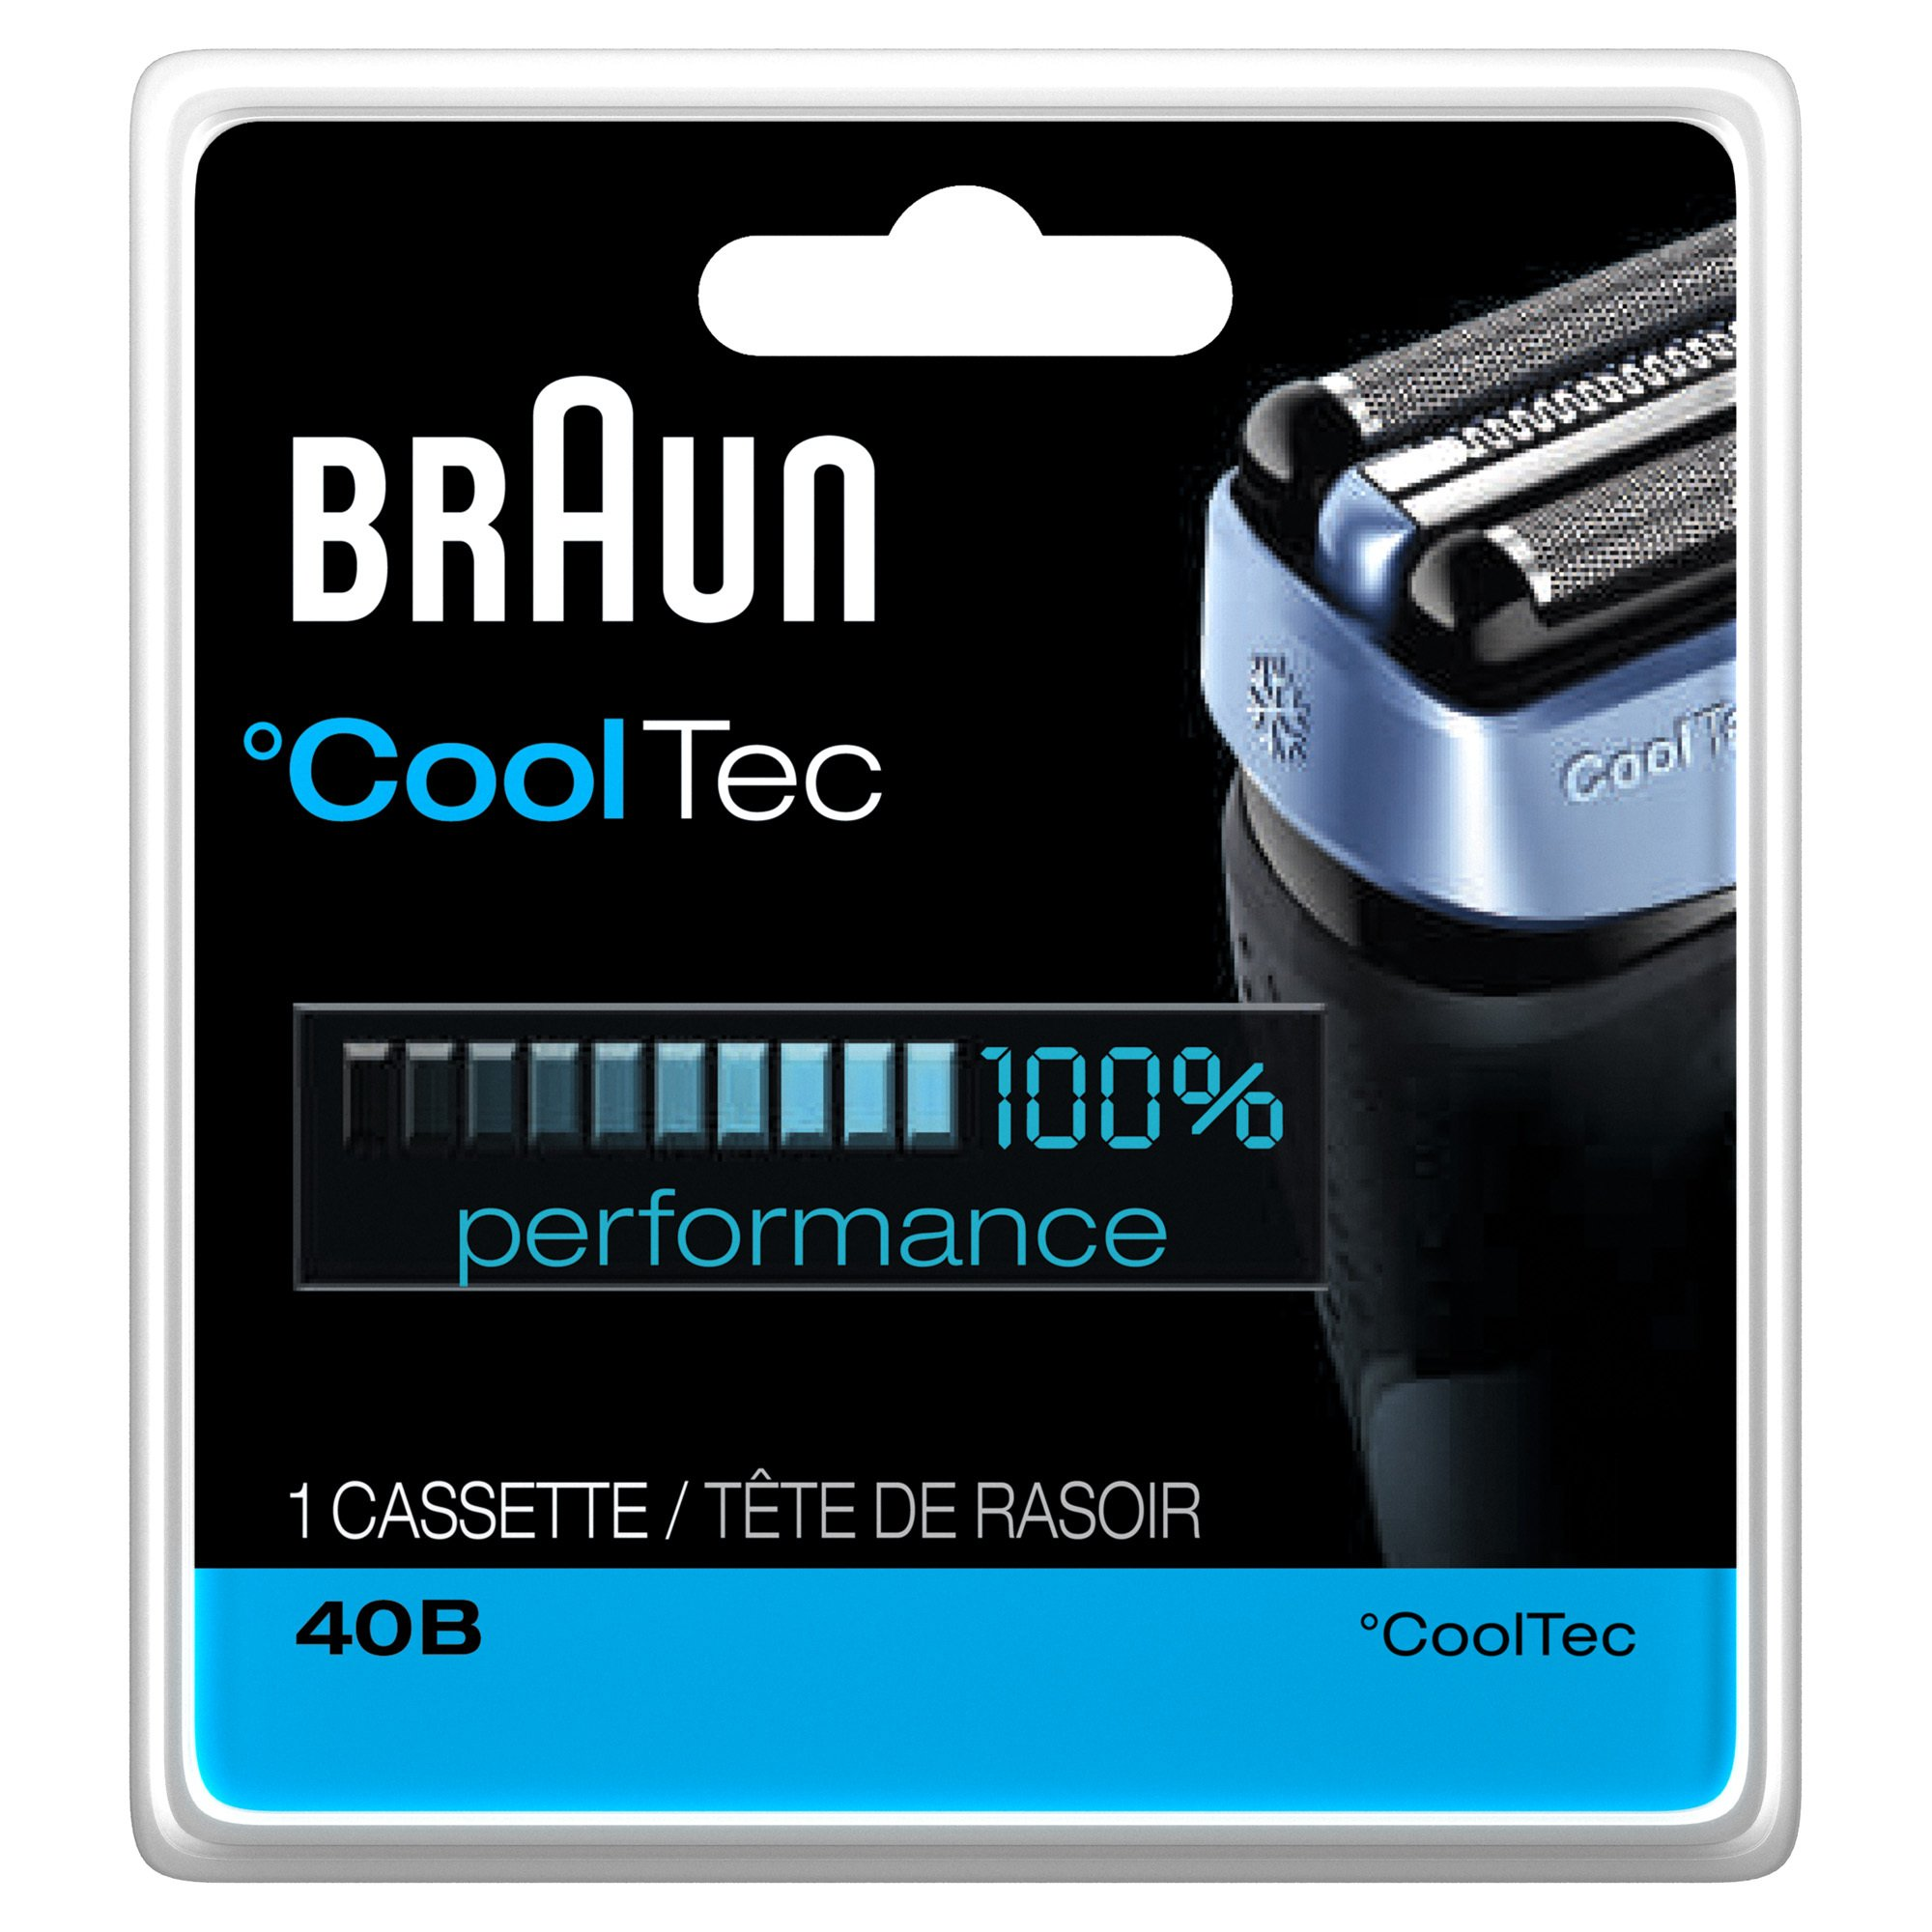 Braun 40B CoolTec Shavers Series Replacement Shaving Foil Head and Cutter Cartridge, 1 Count